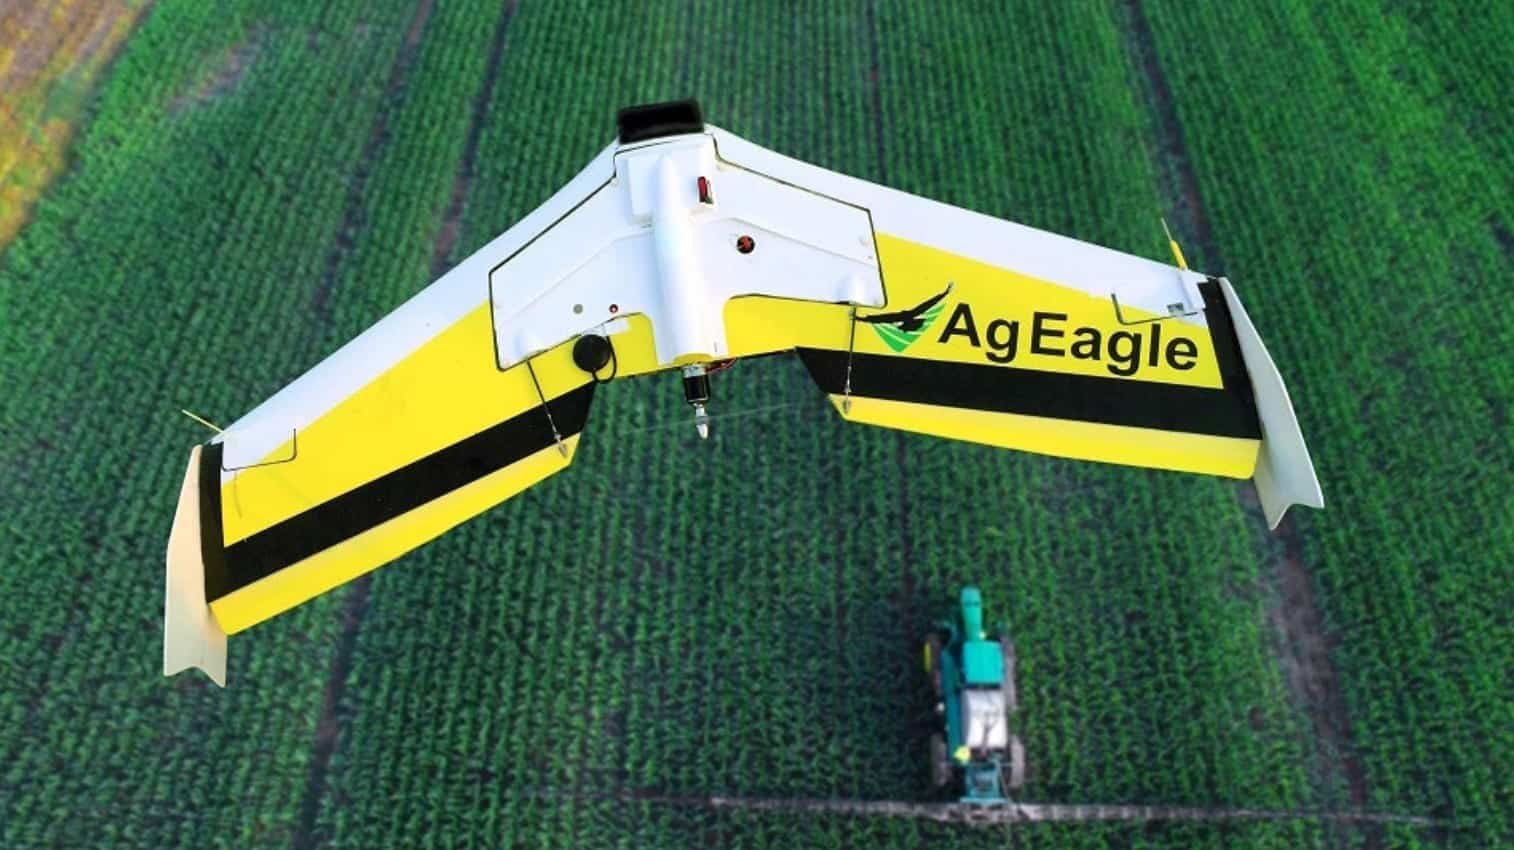 AgEagle Aerial Systems moves to Wichita, Kansas to expand manufacturing facilities